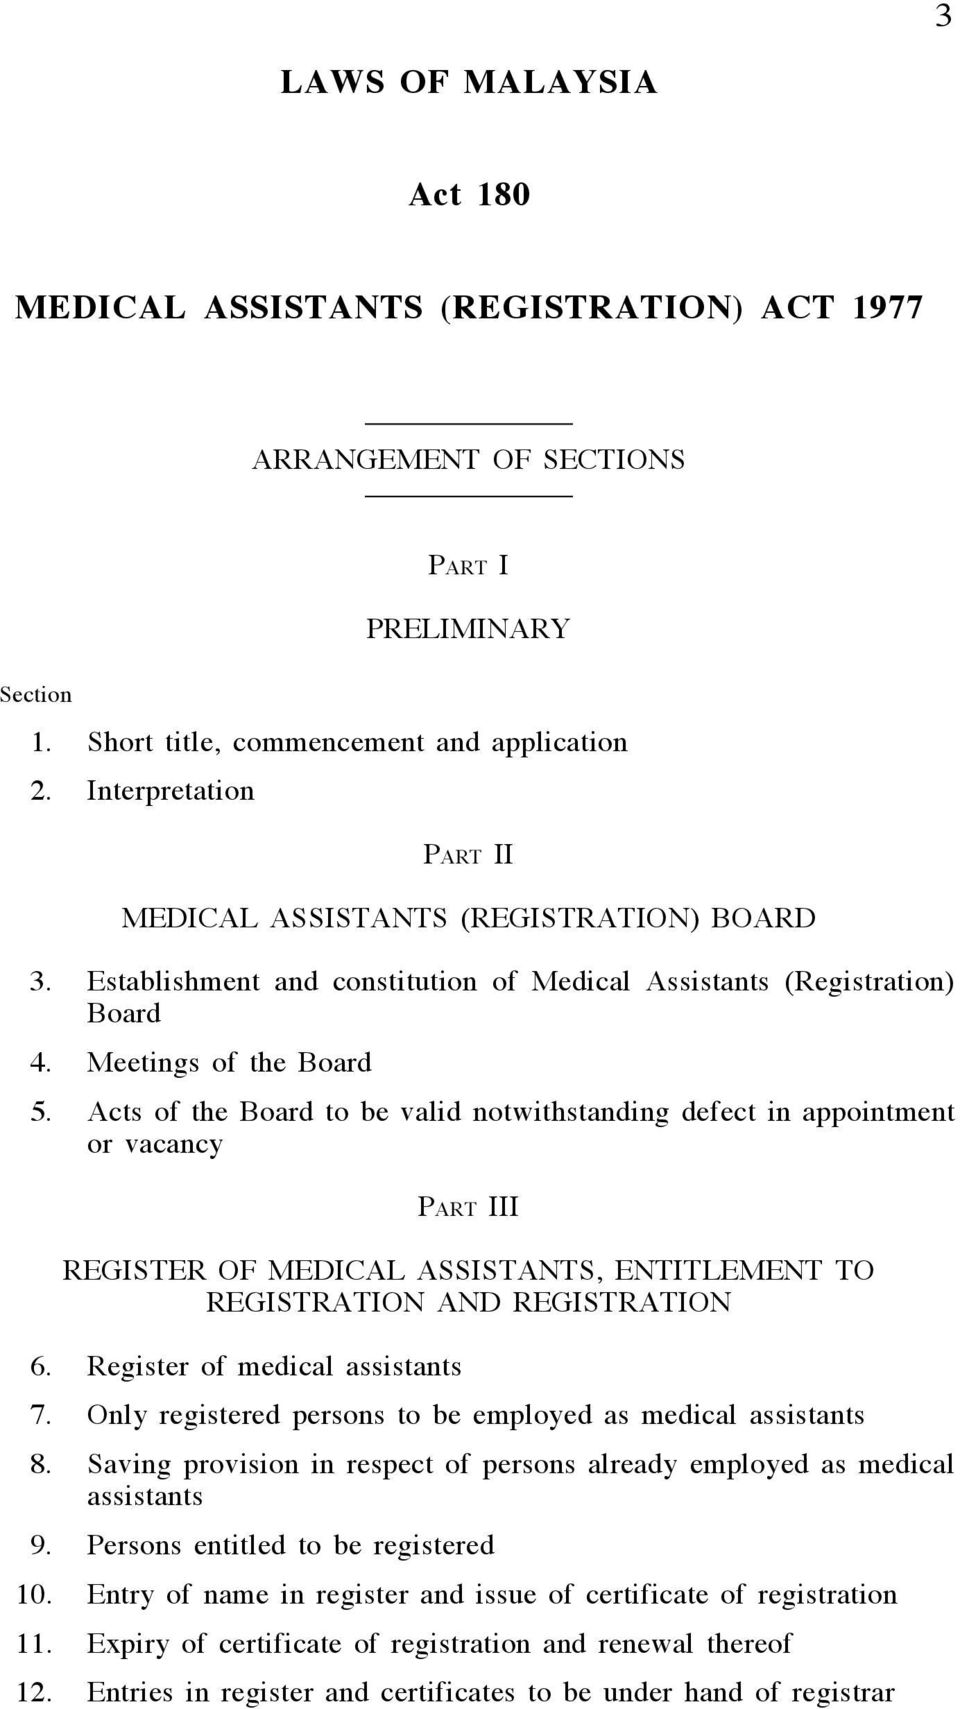 Acts of the Board to be valid notwithstanding defect in appointment or vacancy PART III REGISTER OF MEDICAL ASSISTANTS, ENTITLEMENT TO REGISTRATION AND REGISTRATION 6.